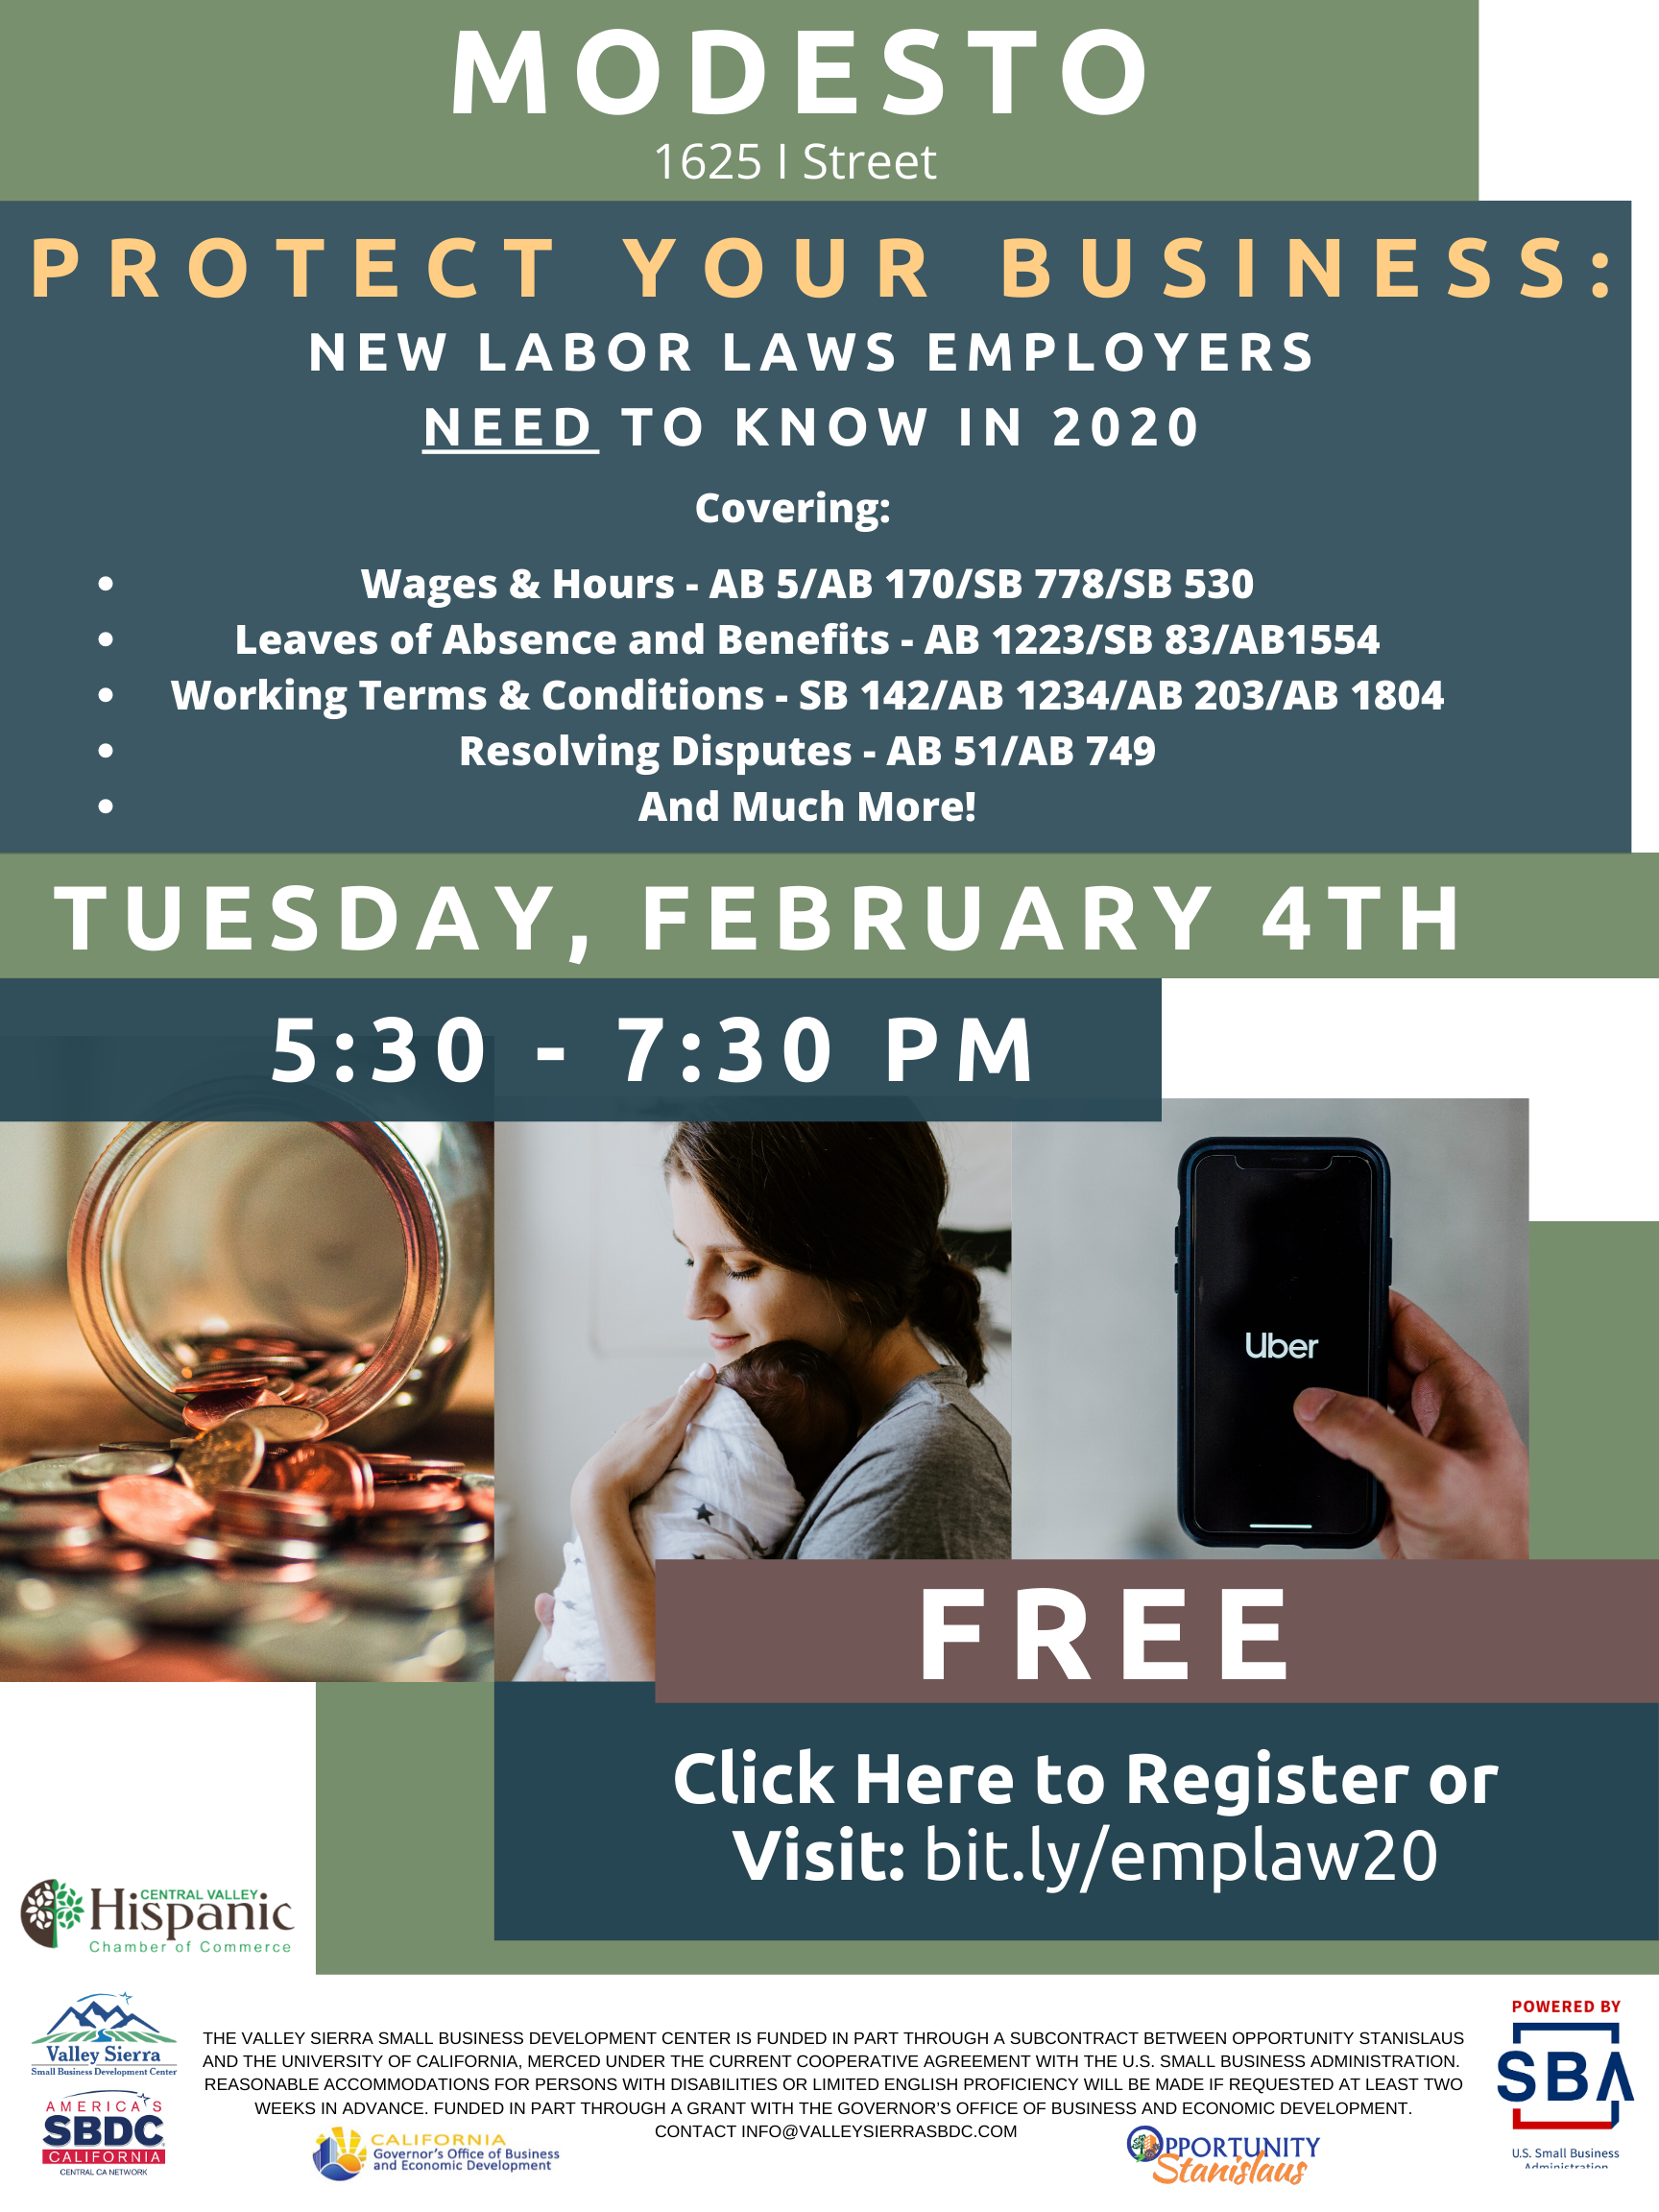 Event Flyer, 2020 New Labor Laws: What Employers Should Know. FREE 2/4/2020, 5:30pm - 7:30pm at the Valley Sierra SBDC, 1625 I STreet, Modesto, CA.